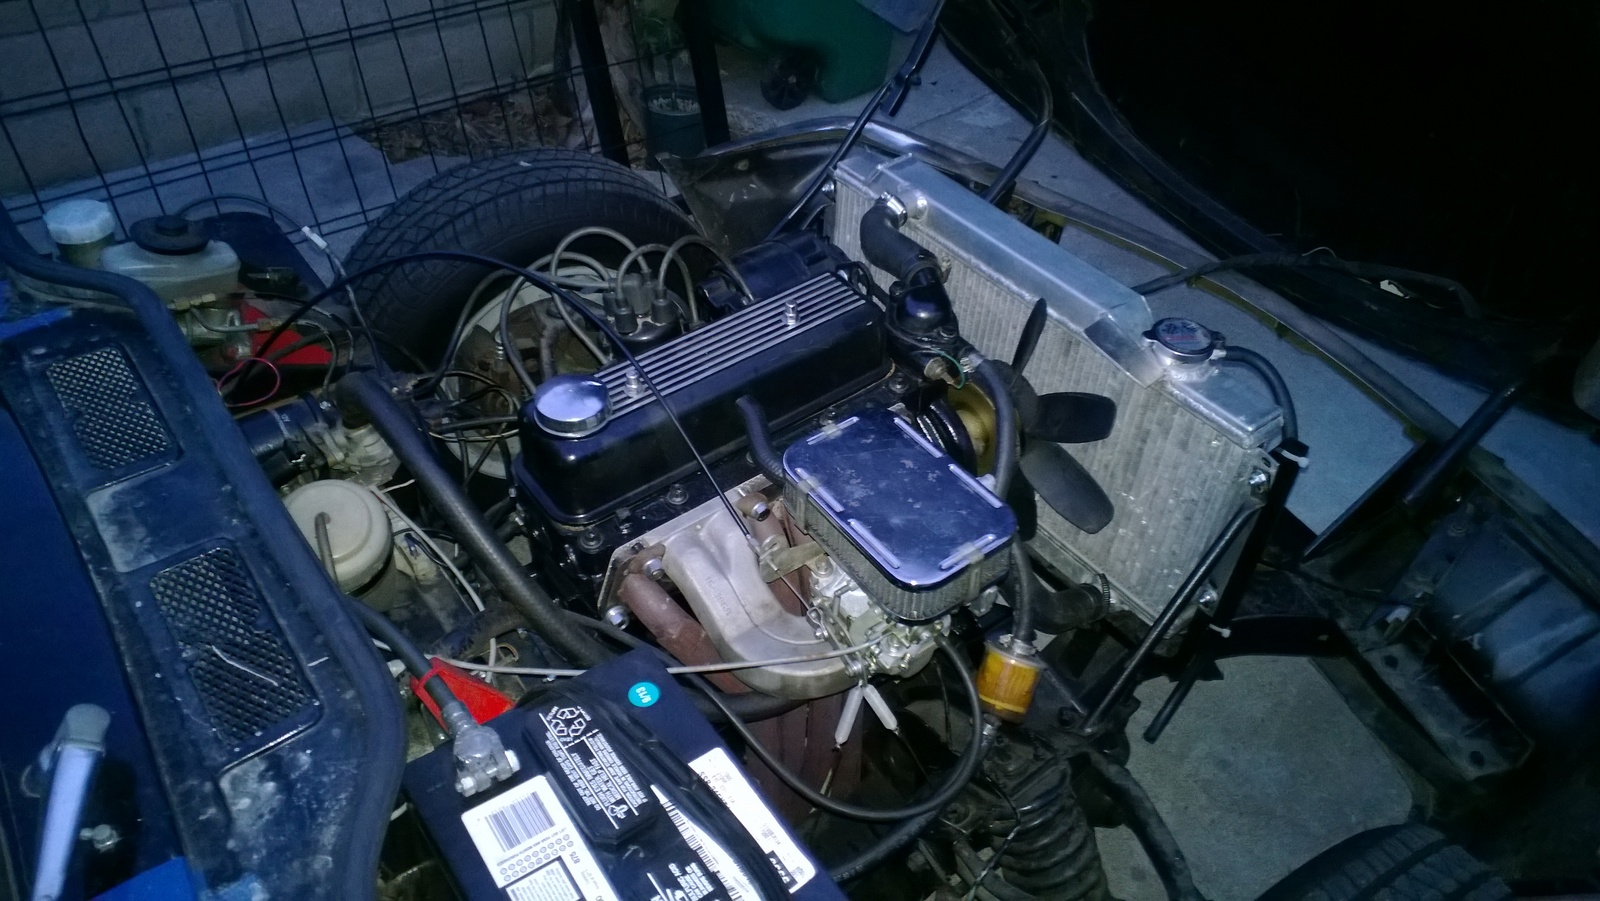 Wiring Diagram For Triumph Tr7 1976 Best Library Tr8 1978 Spitfire Get Free Image Tr6